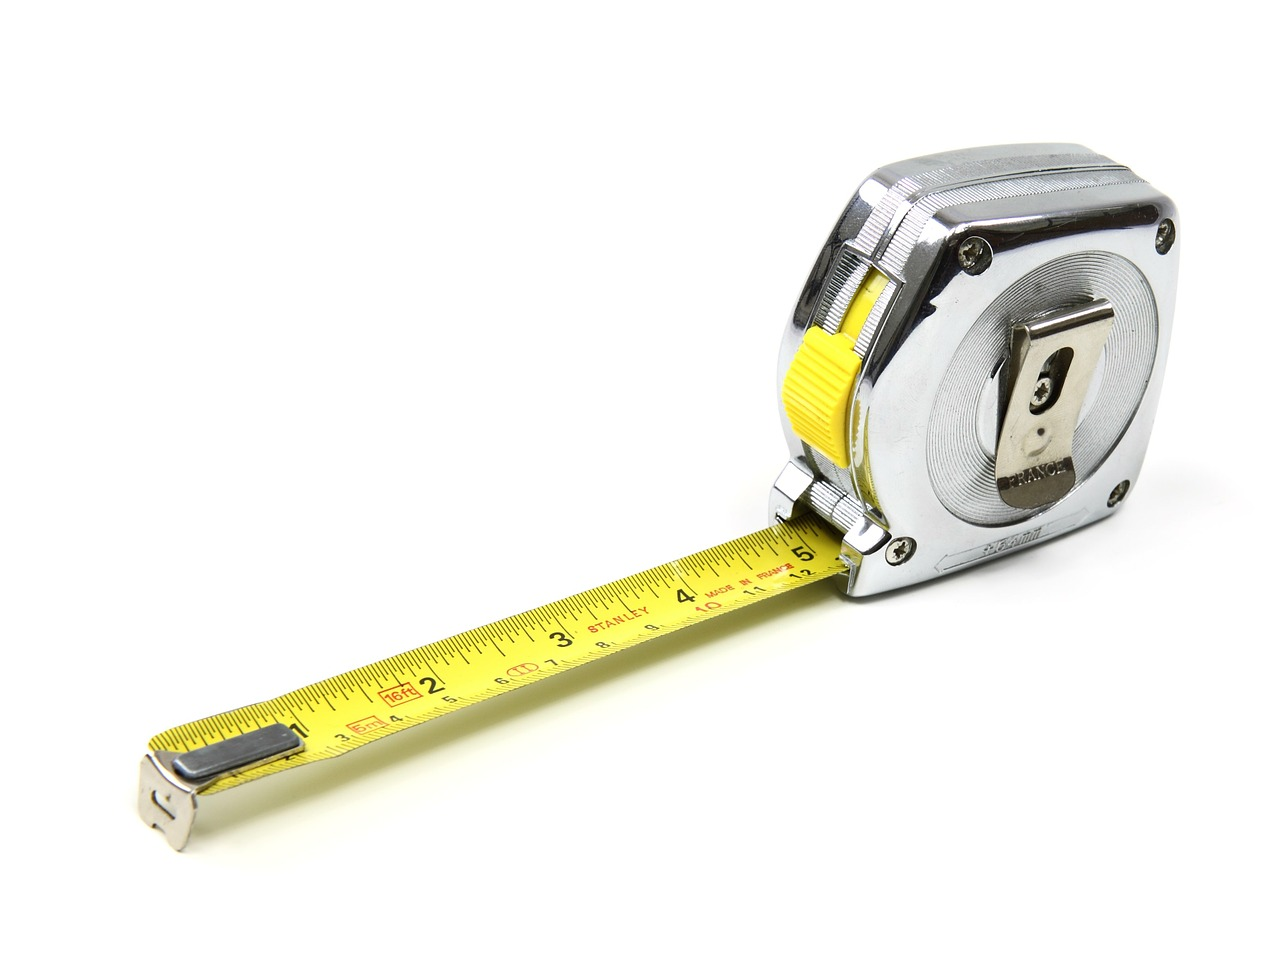 centimeter-2261_1280 Hand Tools List: The Essentials For All